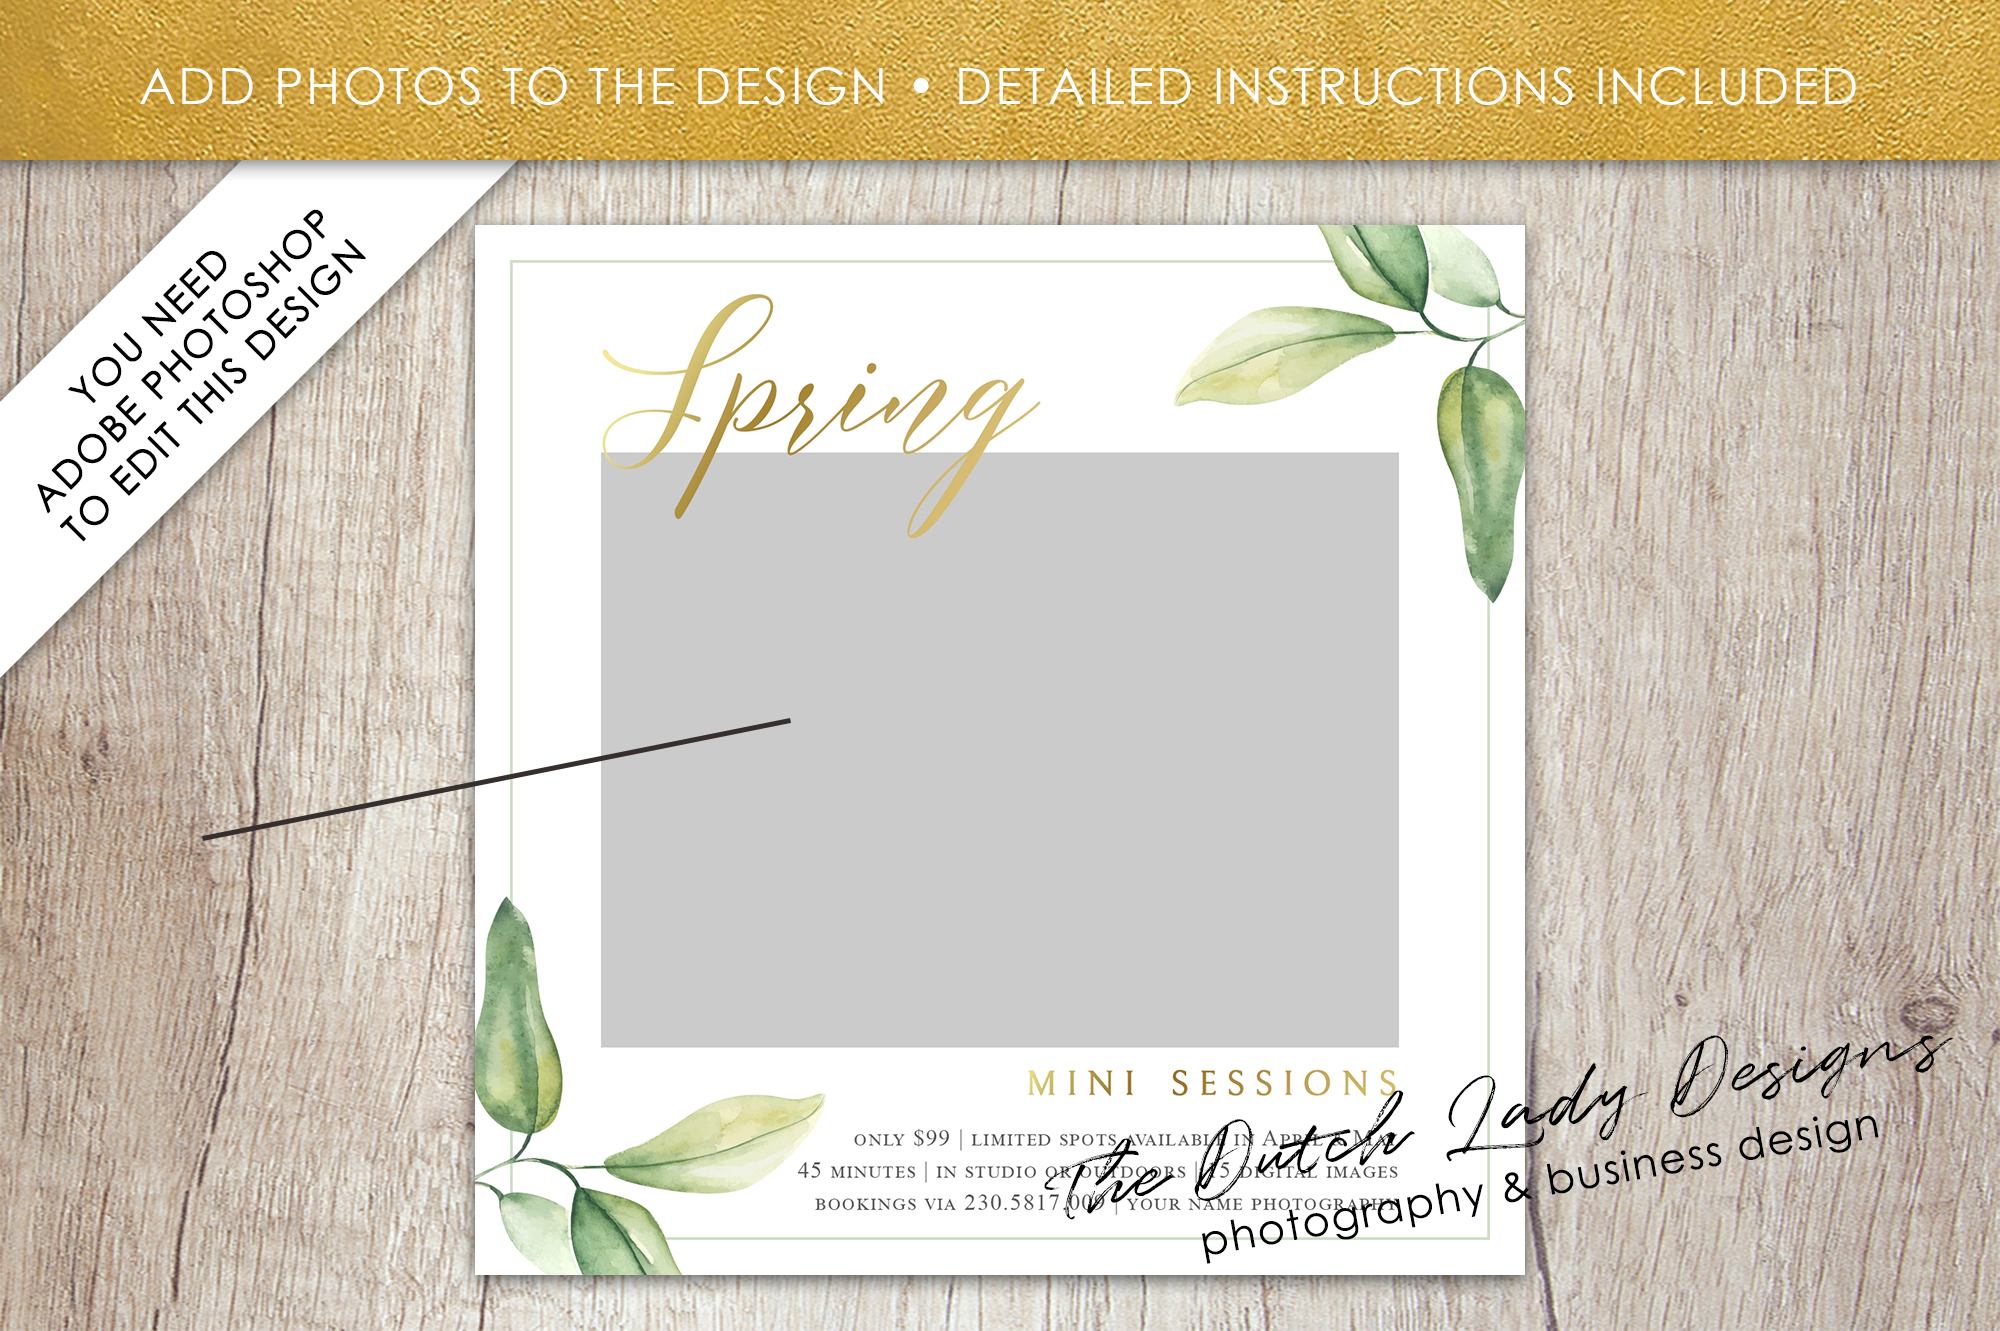 PSD Spring Photo Session Card Template - Design #35 example image 2